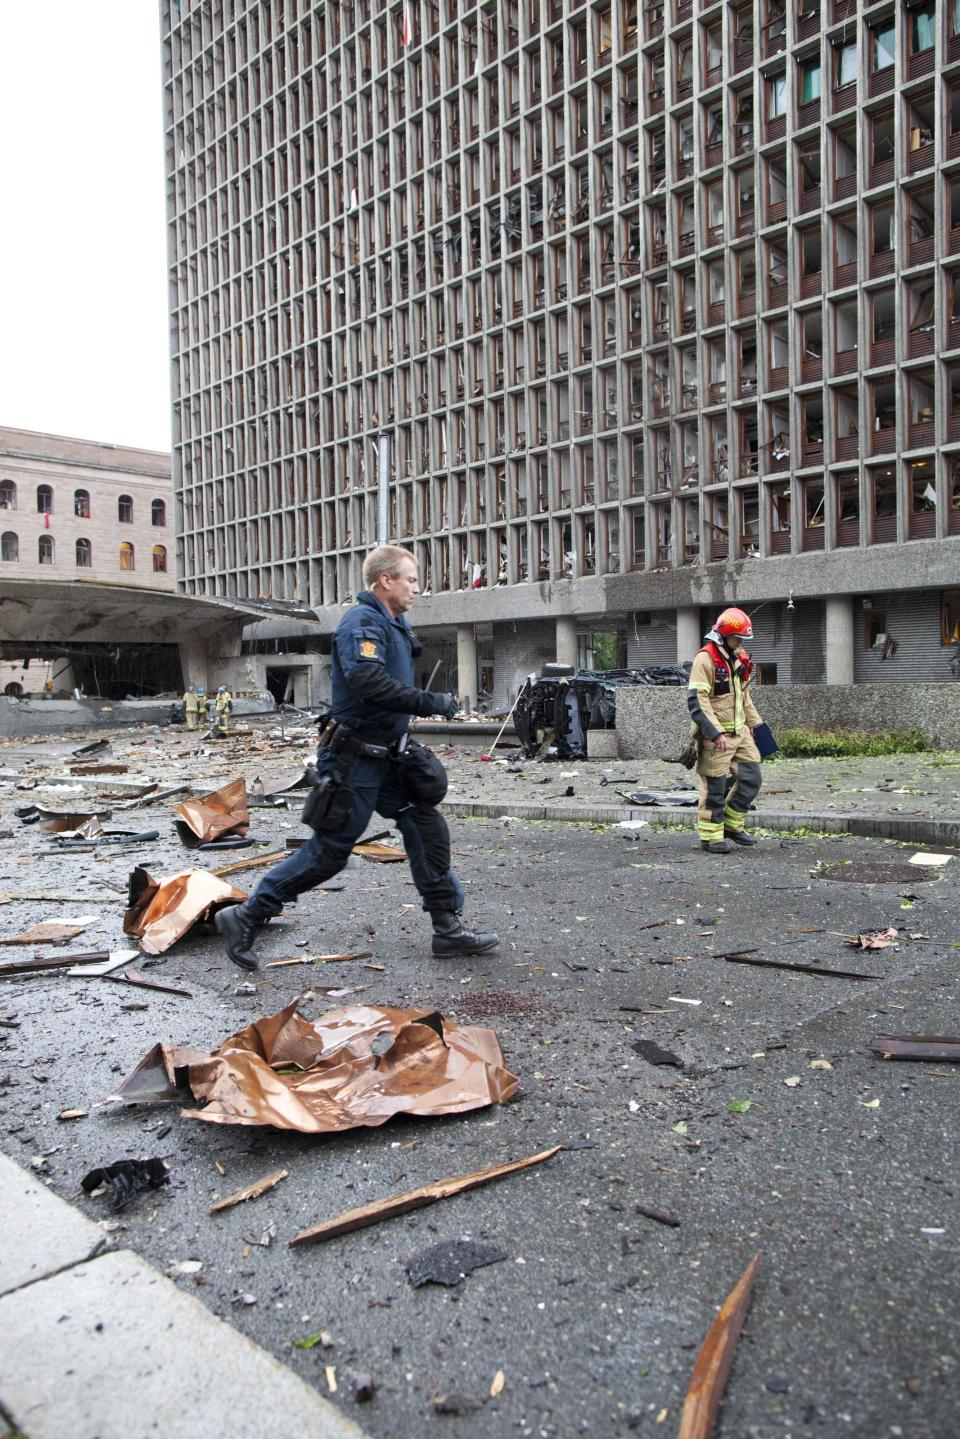 An officer responds in the center of Oslo, Friday July 22, 2011, following an explosion that tore open several buildings including the prime minister's office, shattering windows and covering the street with documents and debris. (AP Photo/Scanpix, Thomas Winje Øijord)